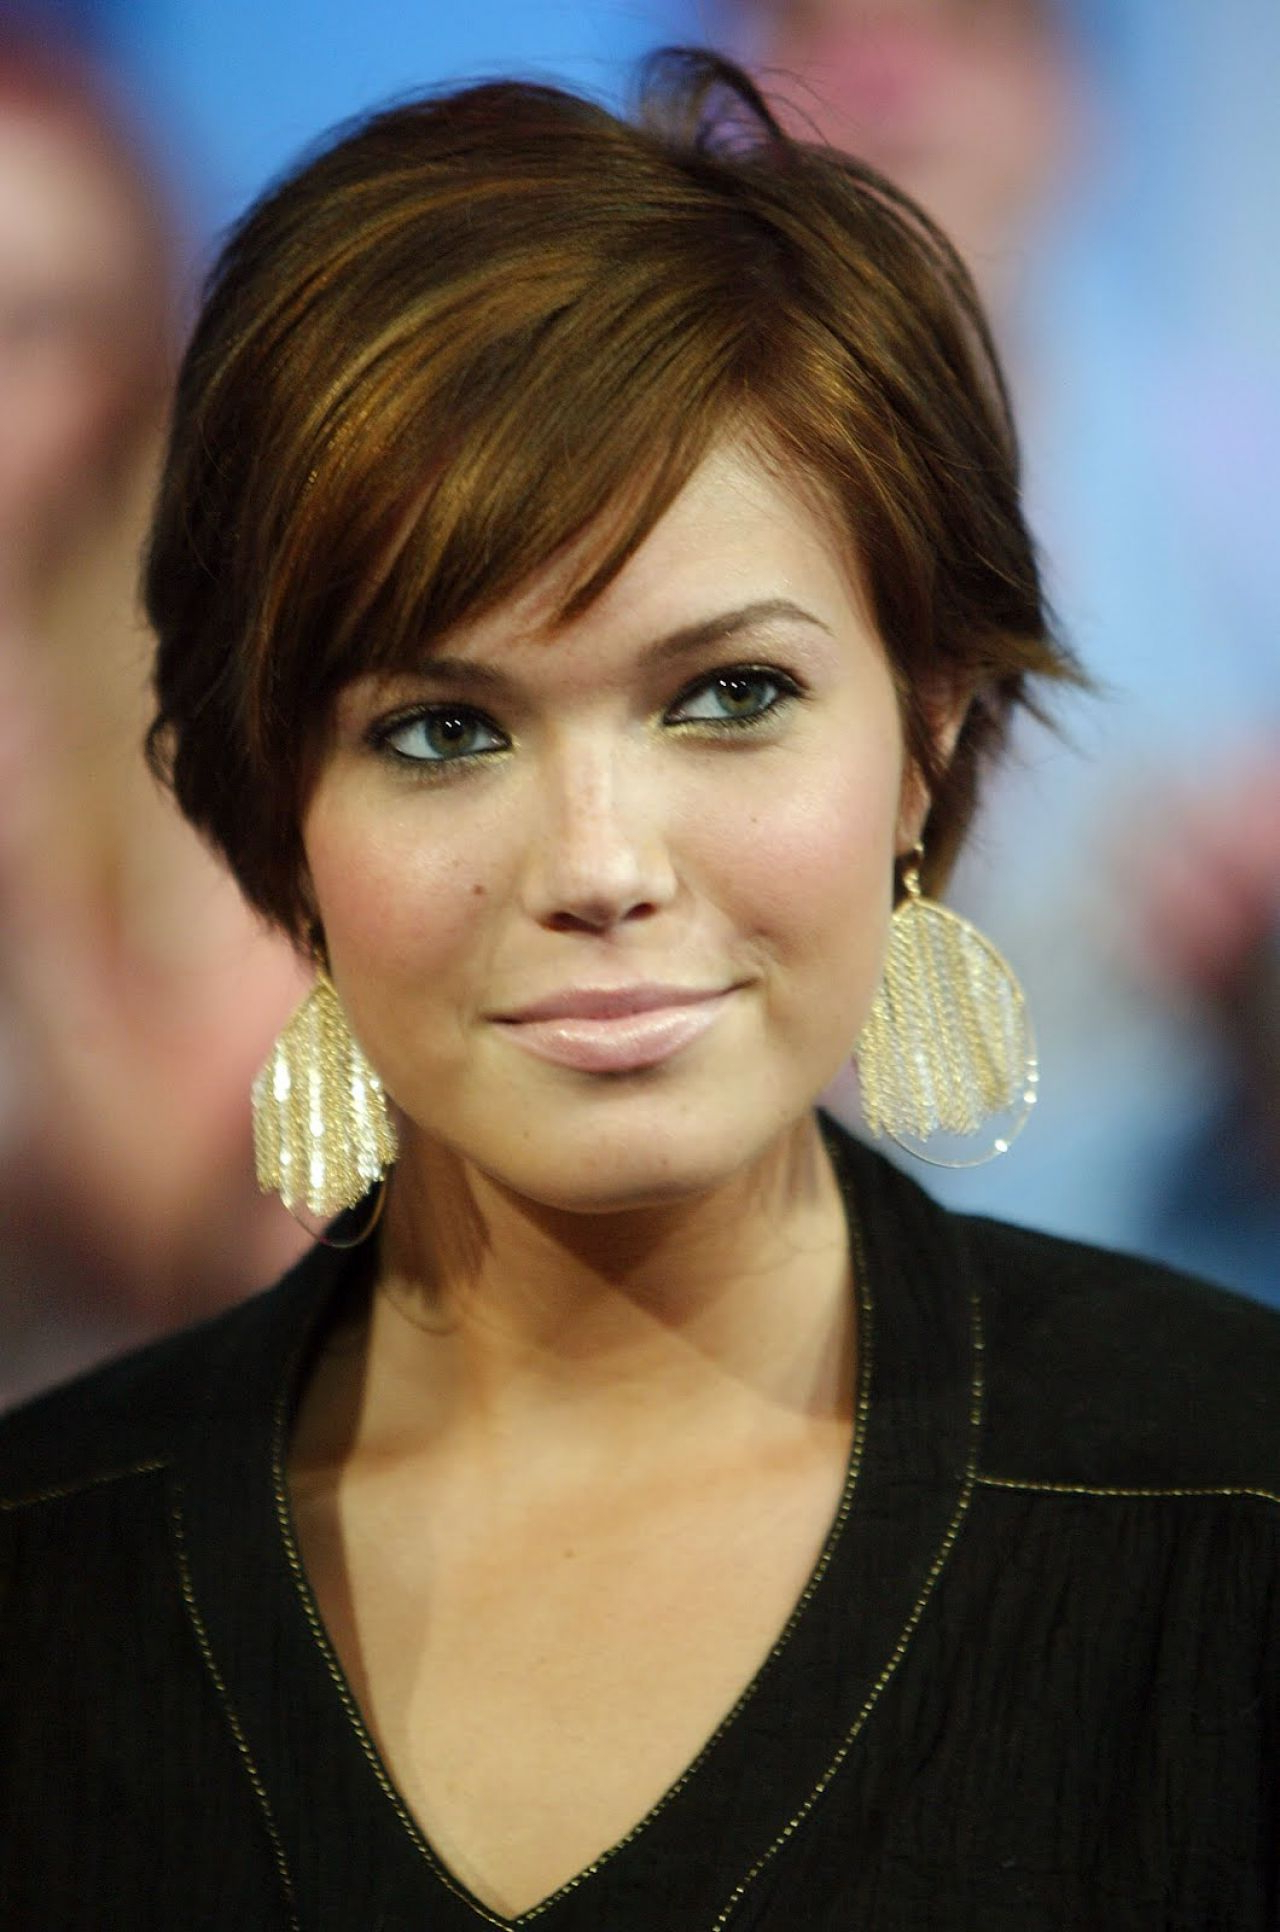 Short Hairstyles For Square Faces Female – Google Search Throughout Short Haircuts For Round Faces And Thick Hair (View 16 of 25)